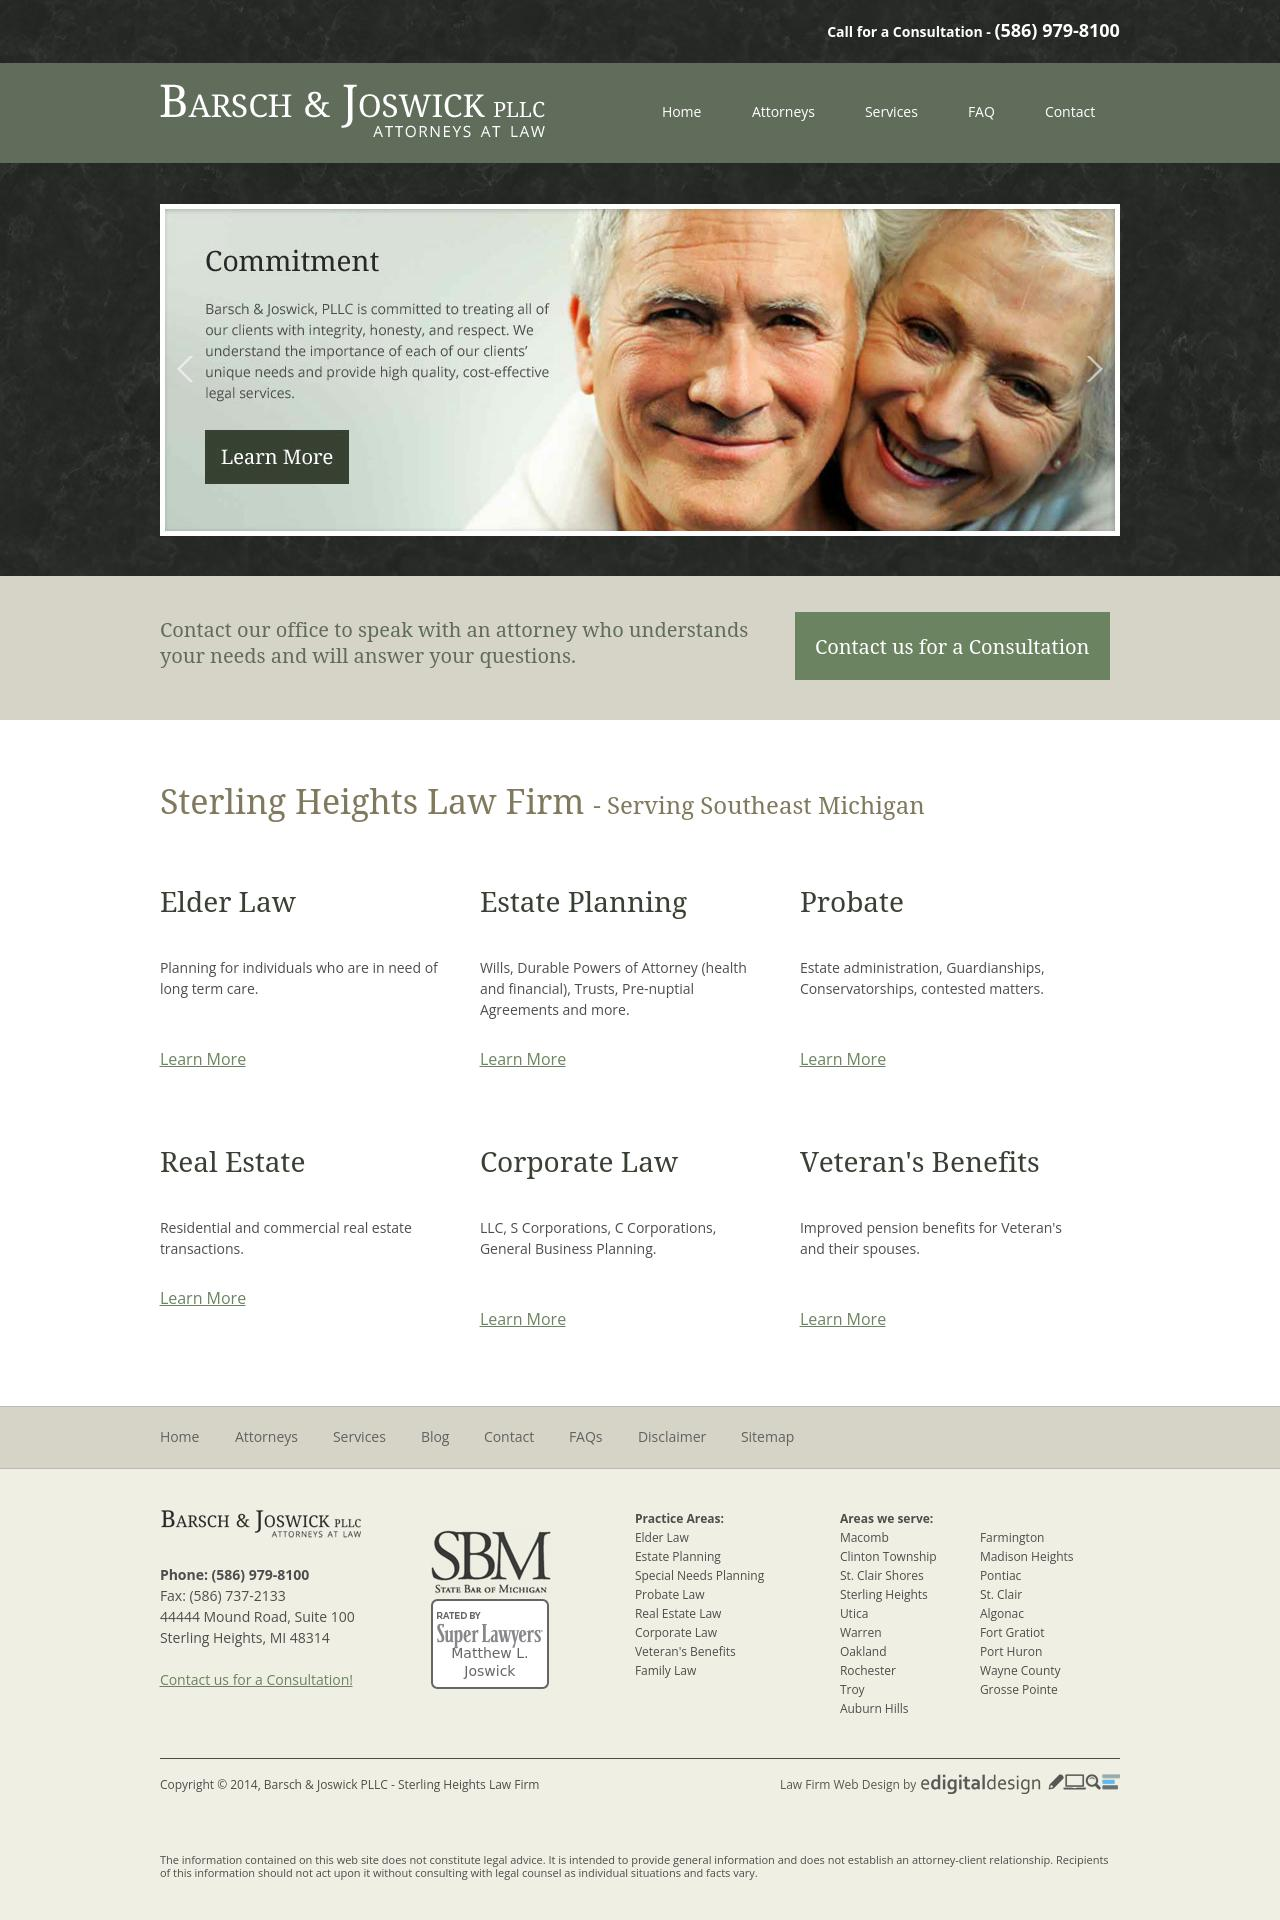 Barsch & Joswick PLLC - Sterling Heights MI Lawyers